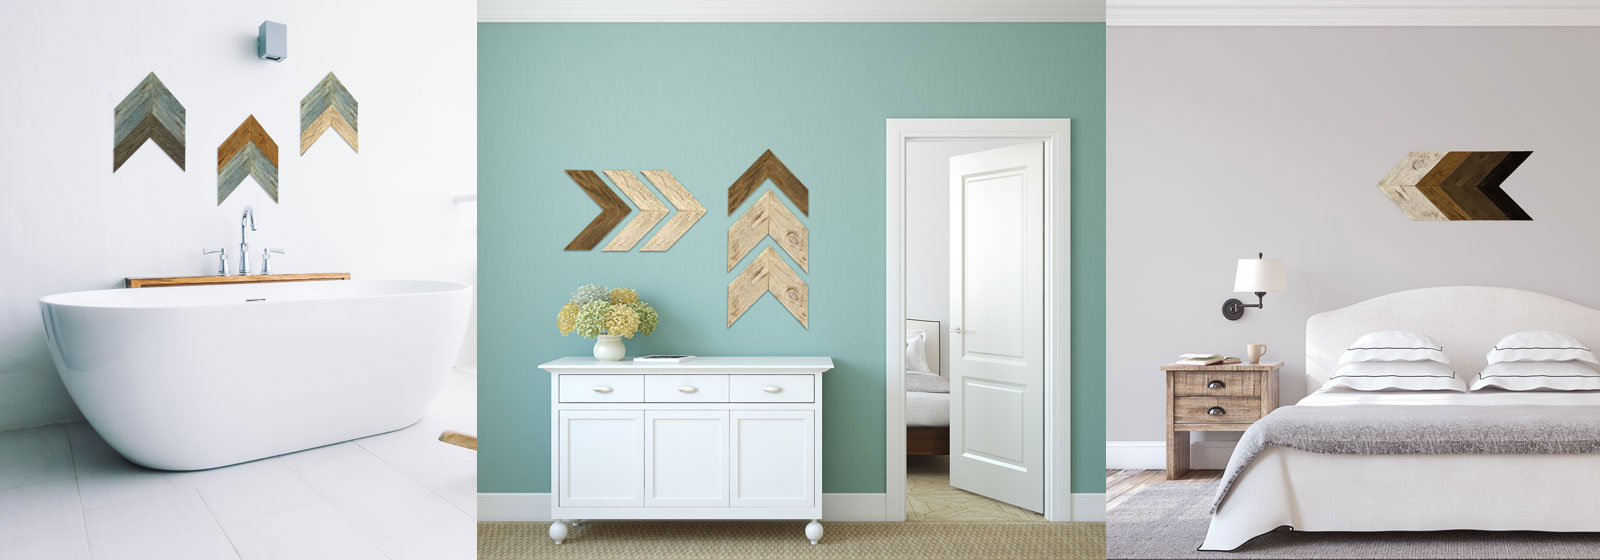 Rustic Wood Chevrons